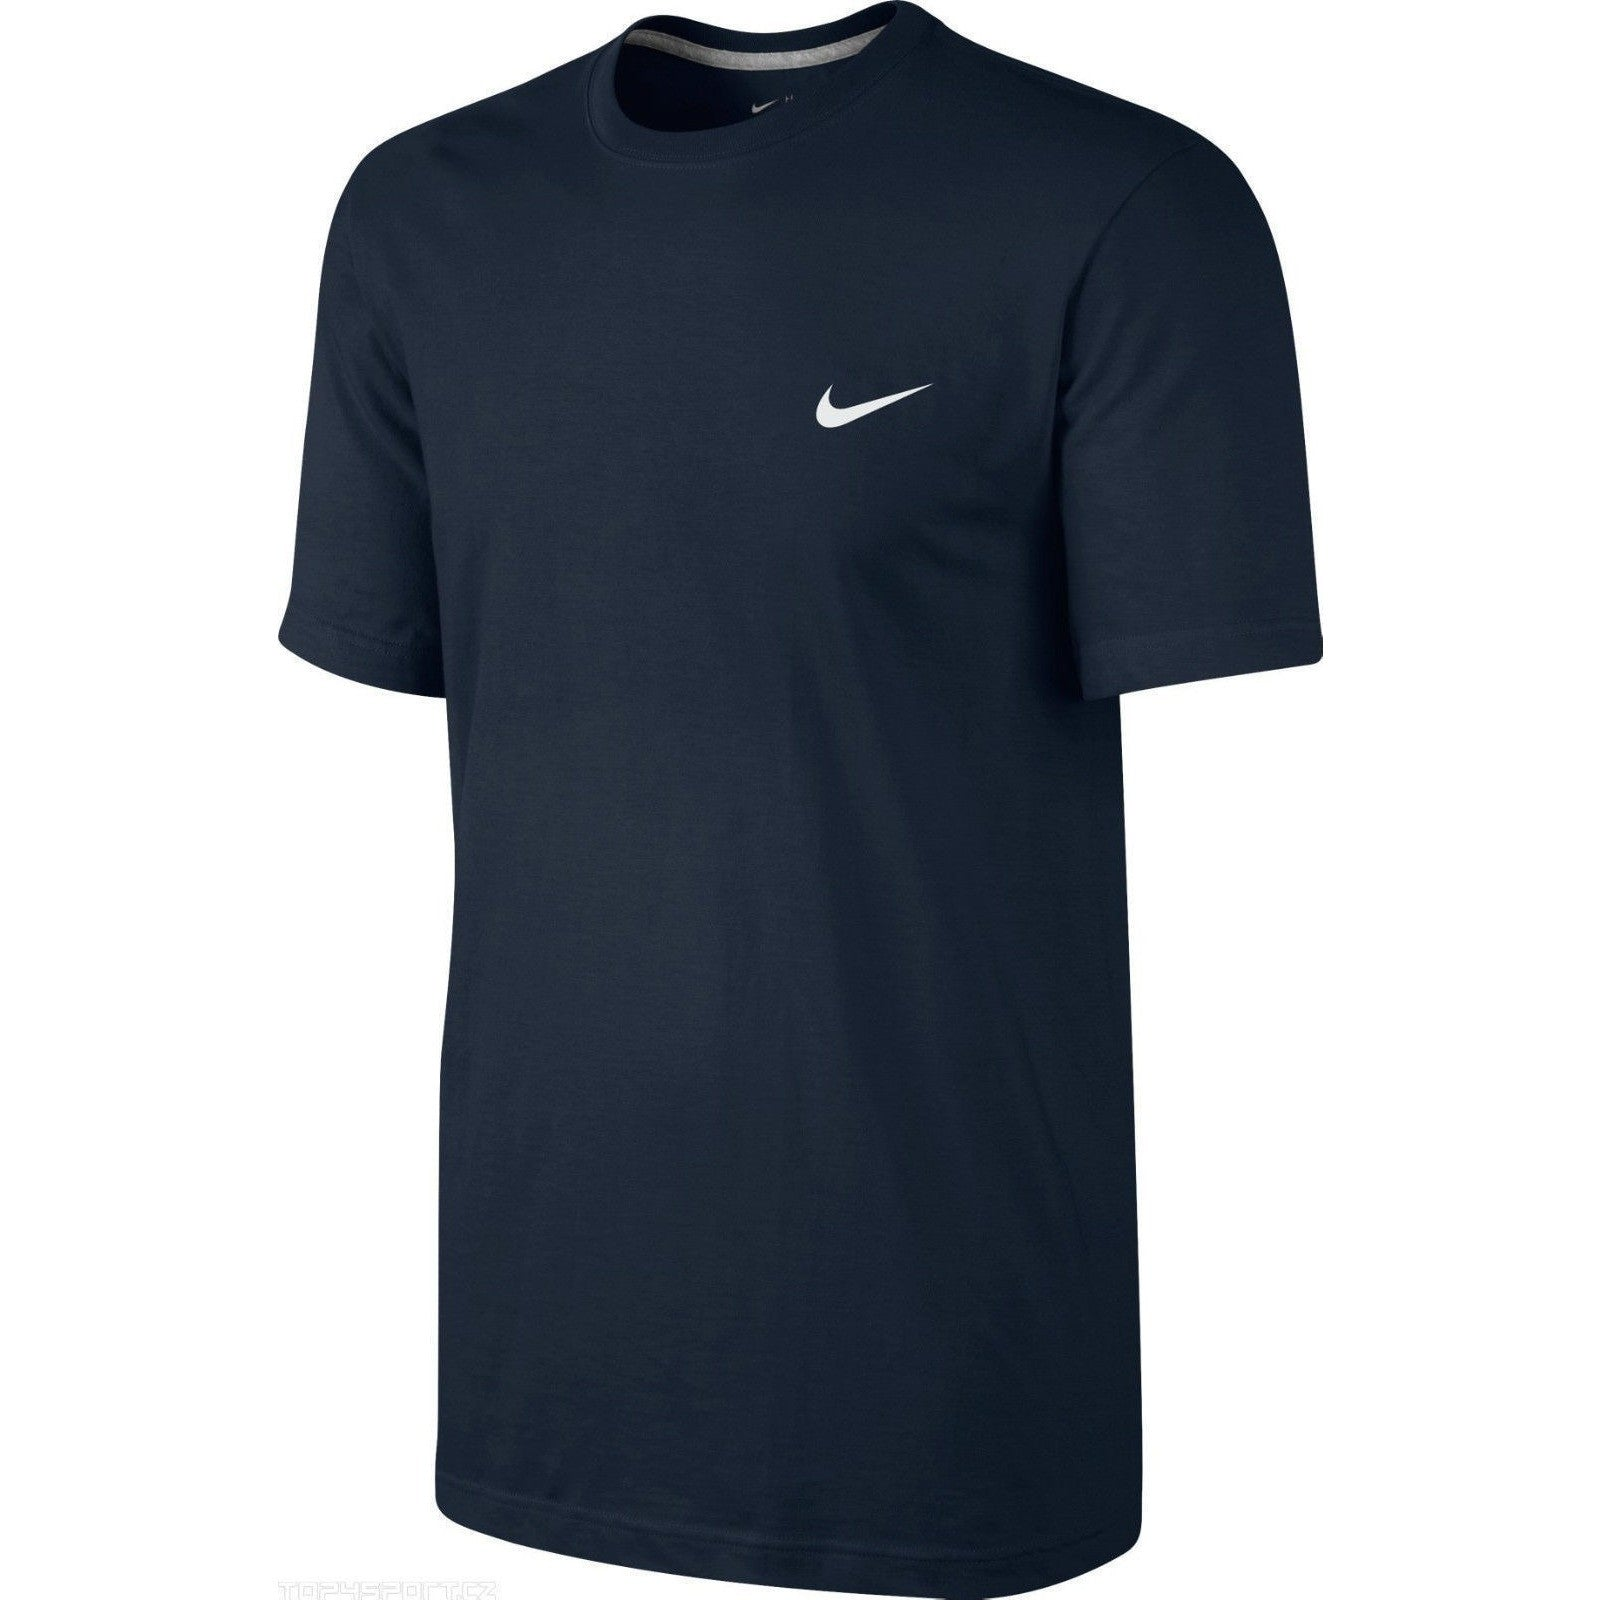 MENS NIKE EMBROIDERED SWOOSH BLACK SHORT SLEEVED T SHIRT TOP